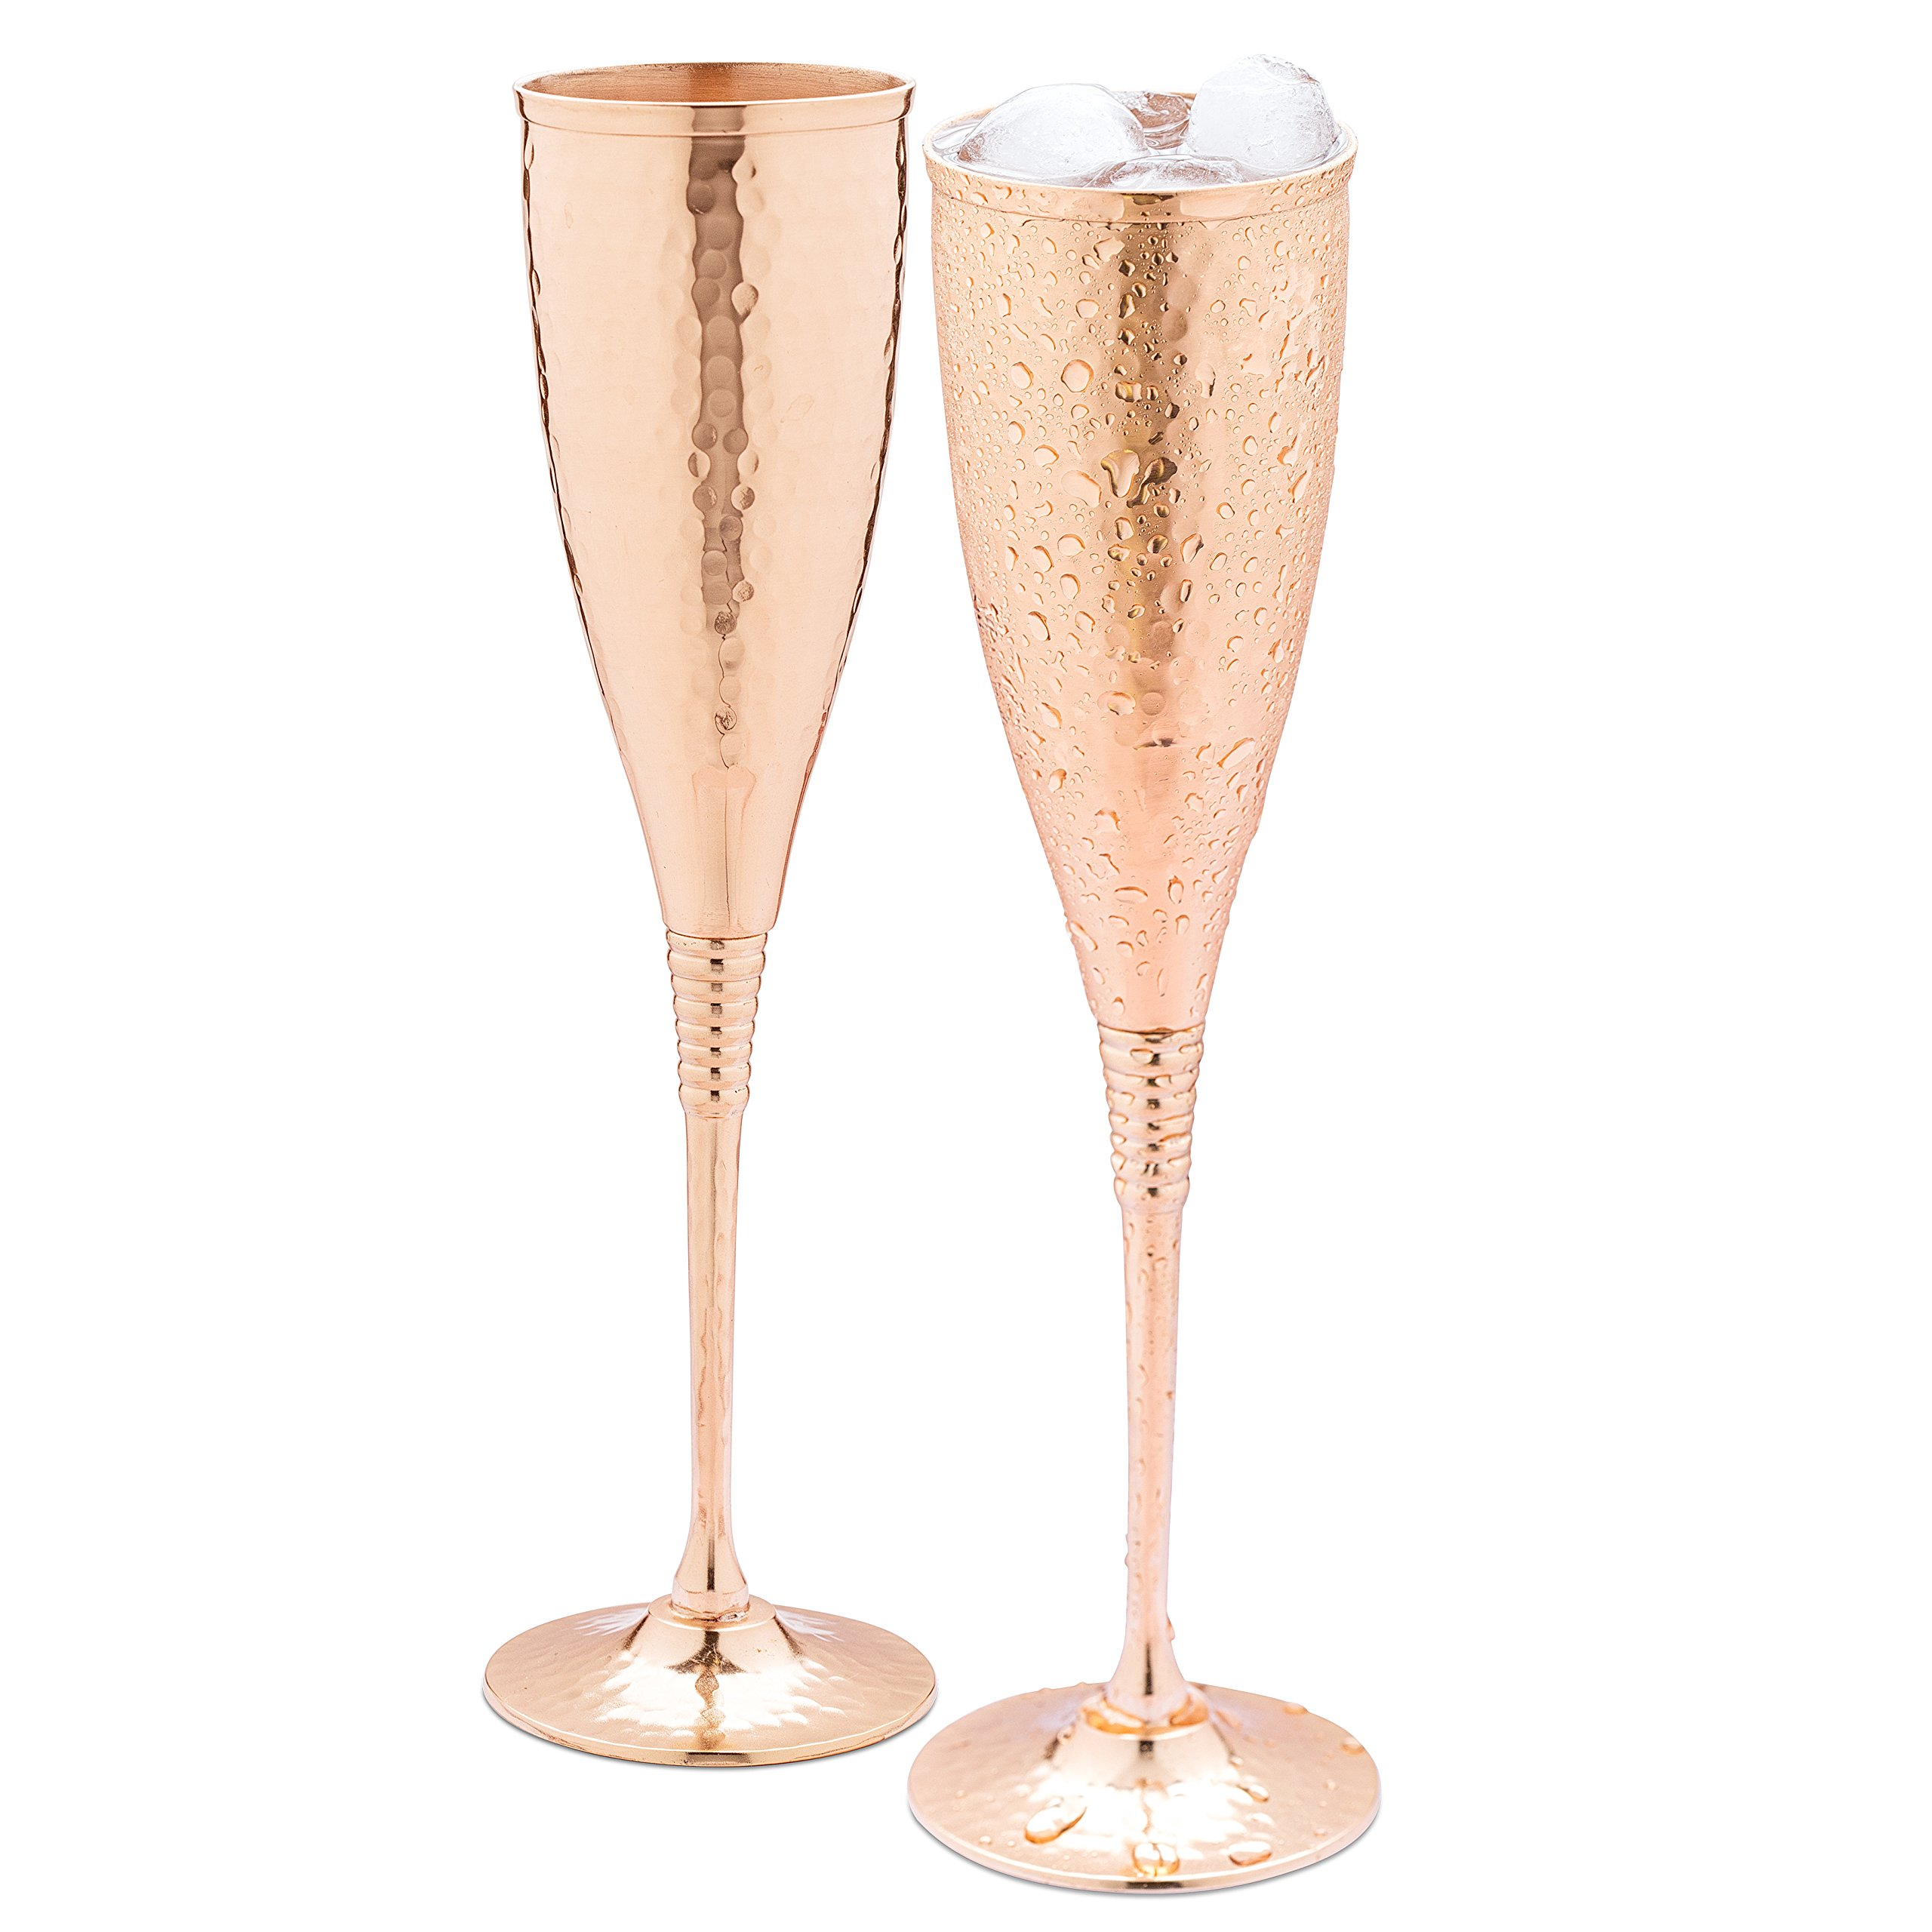 Copper champagne flutes of 6.7 oz set of 2 - Luxurious hammered copper champagne glasses - Each one is handcrafted and lacquered to prevent from tarnishing.